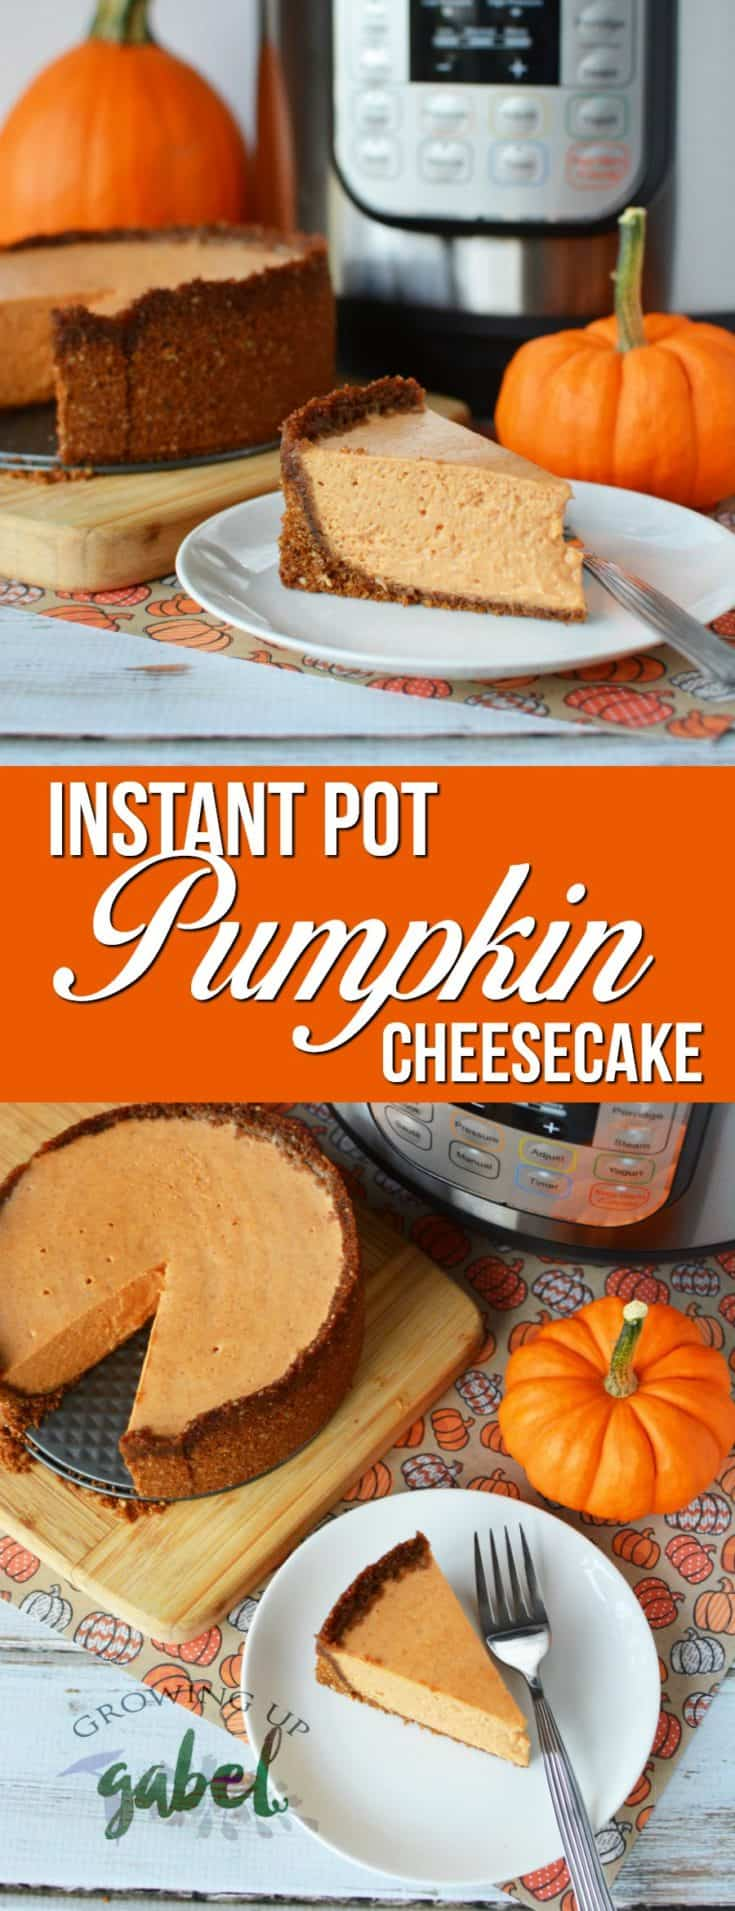 Make a cheesecake in your Instant Pot. Pumpkin Cheesecake with a gingersnap cookie crust is a delicious way to use your Instant Pot!